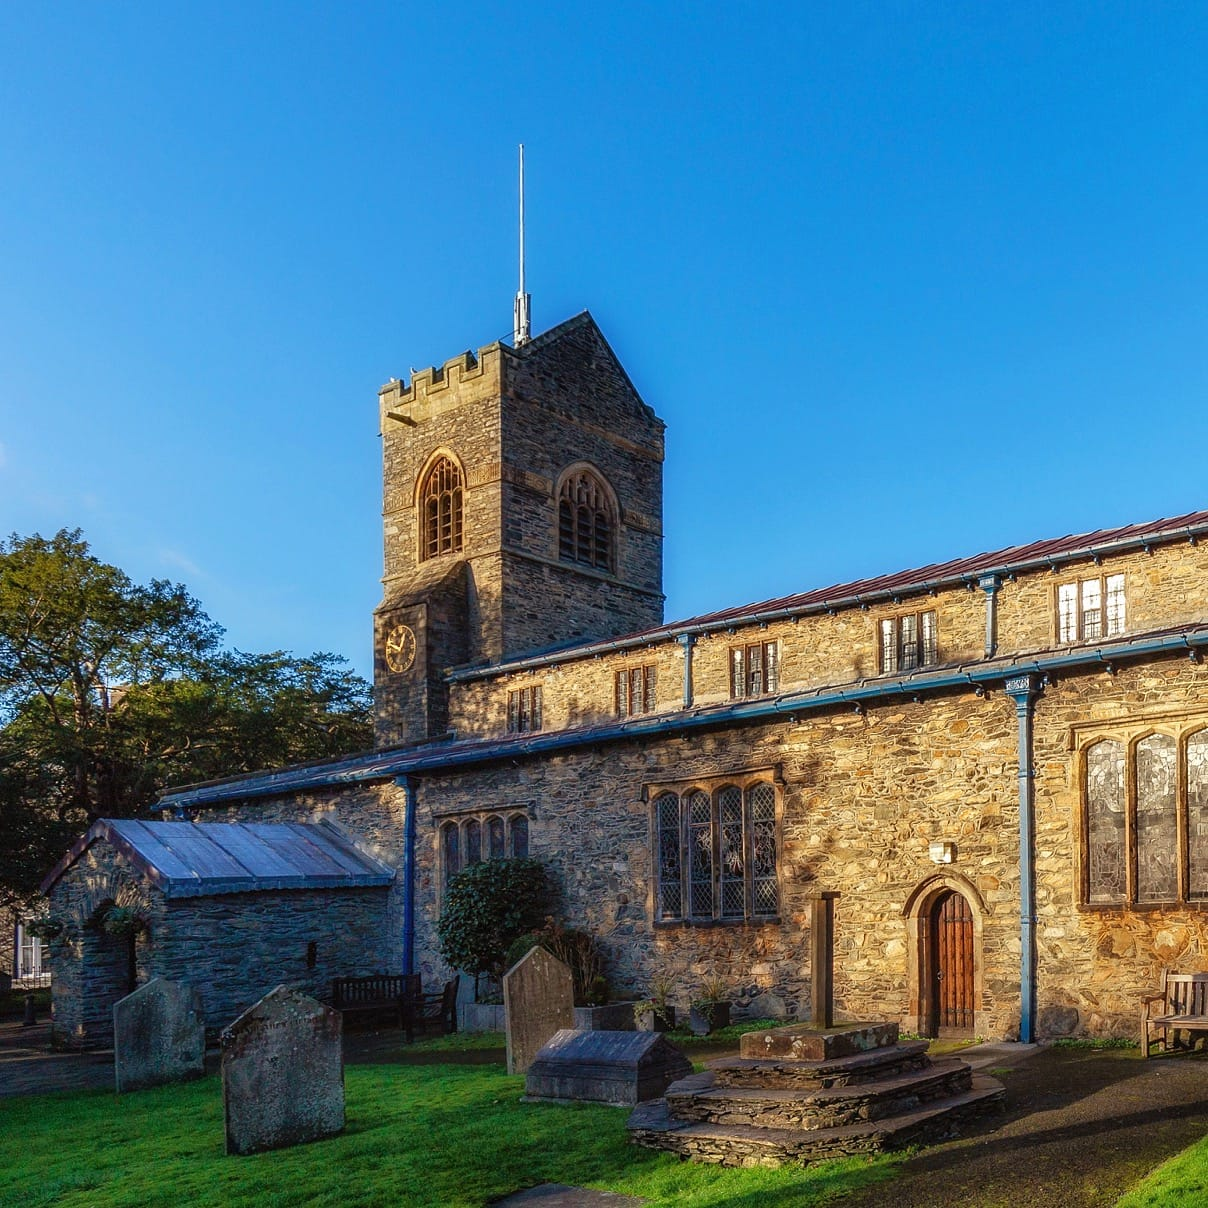 St Martin's Church, Bowness-on-Windermere. Photo by Michal Klajban, licensed CC-BY-SA-4.0.